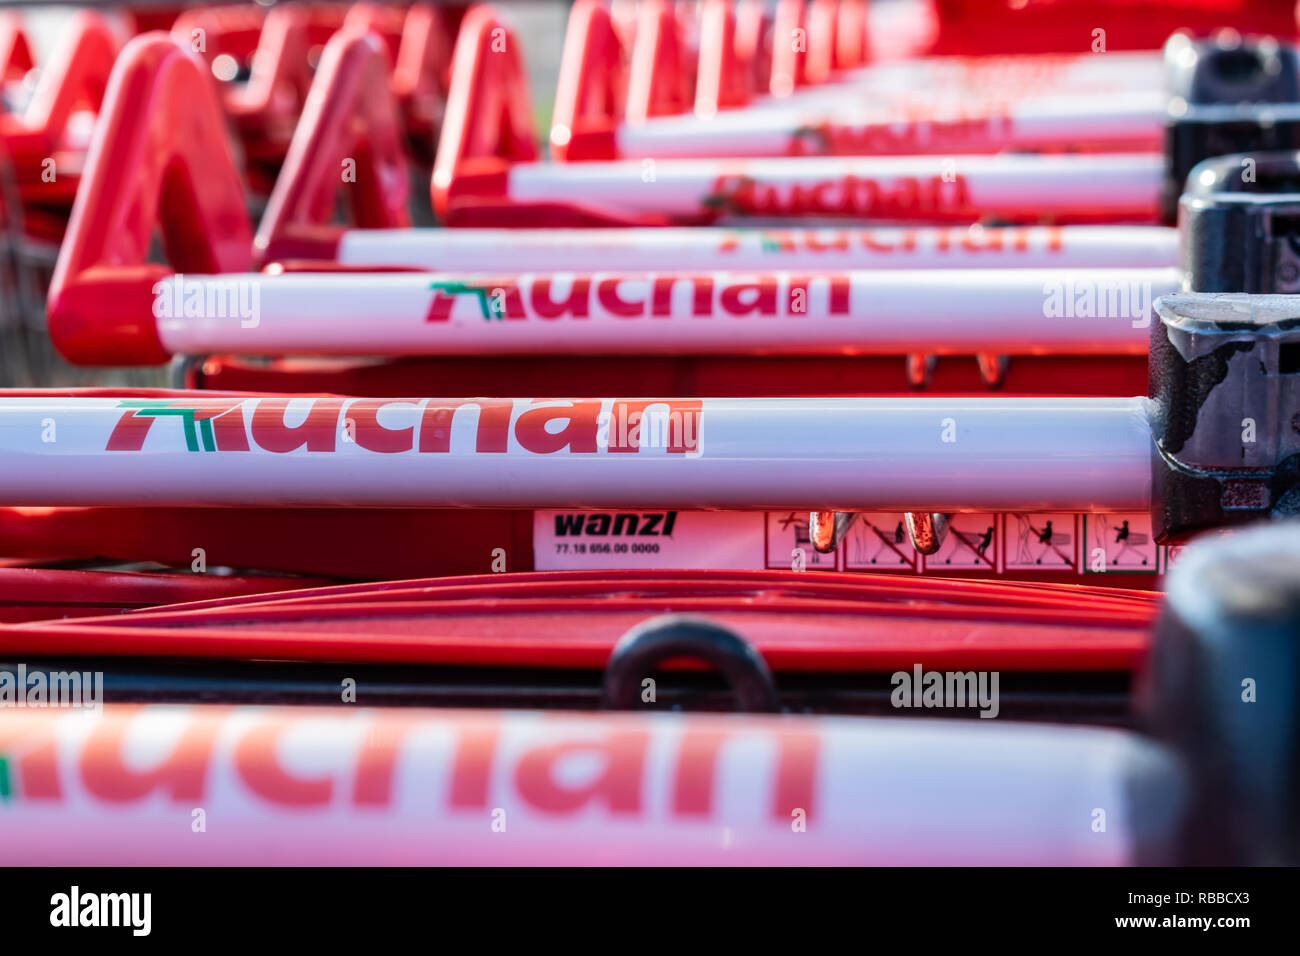 Roncq,FRANCE-February 25,2018  Close-up shopping trolleys Auchan  hypermarket.Auchan is a French international supermarket chain. 479d4d085d30